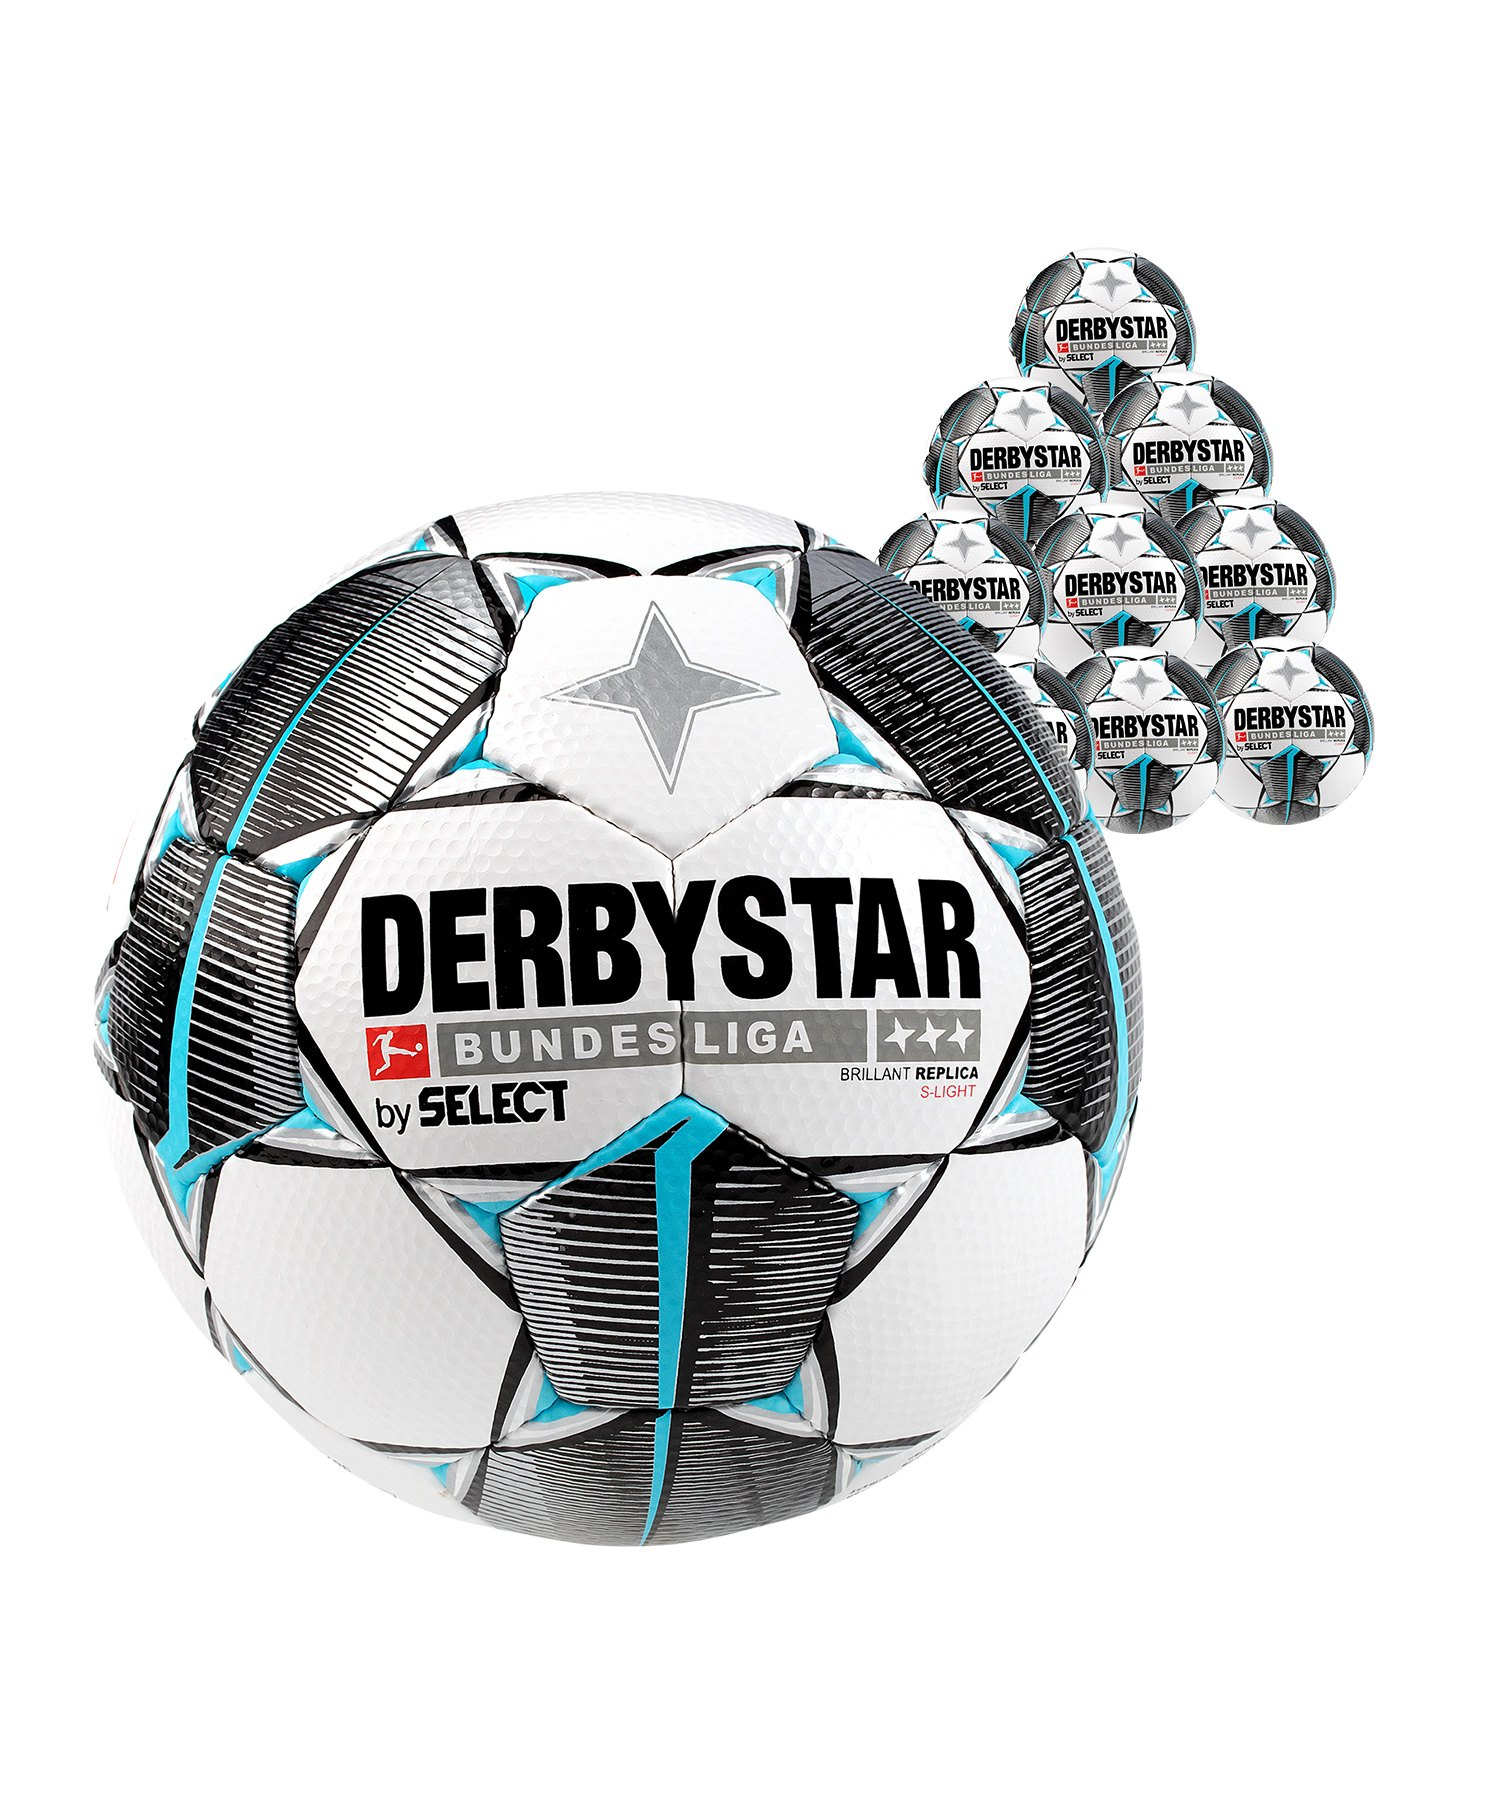 Derbystar Bundesliga Bril Replica S-Light 10x Gr.4 Weiss F019 - weiss